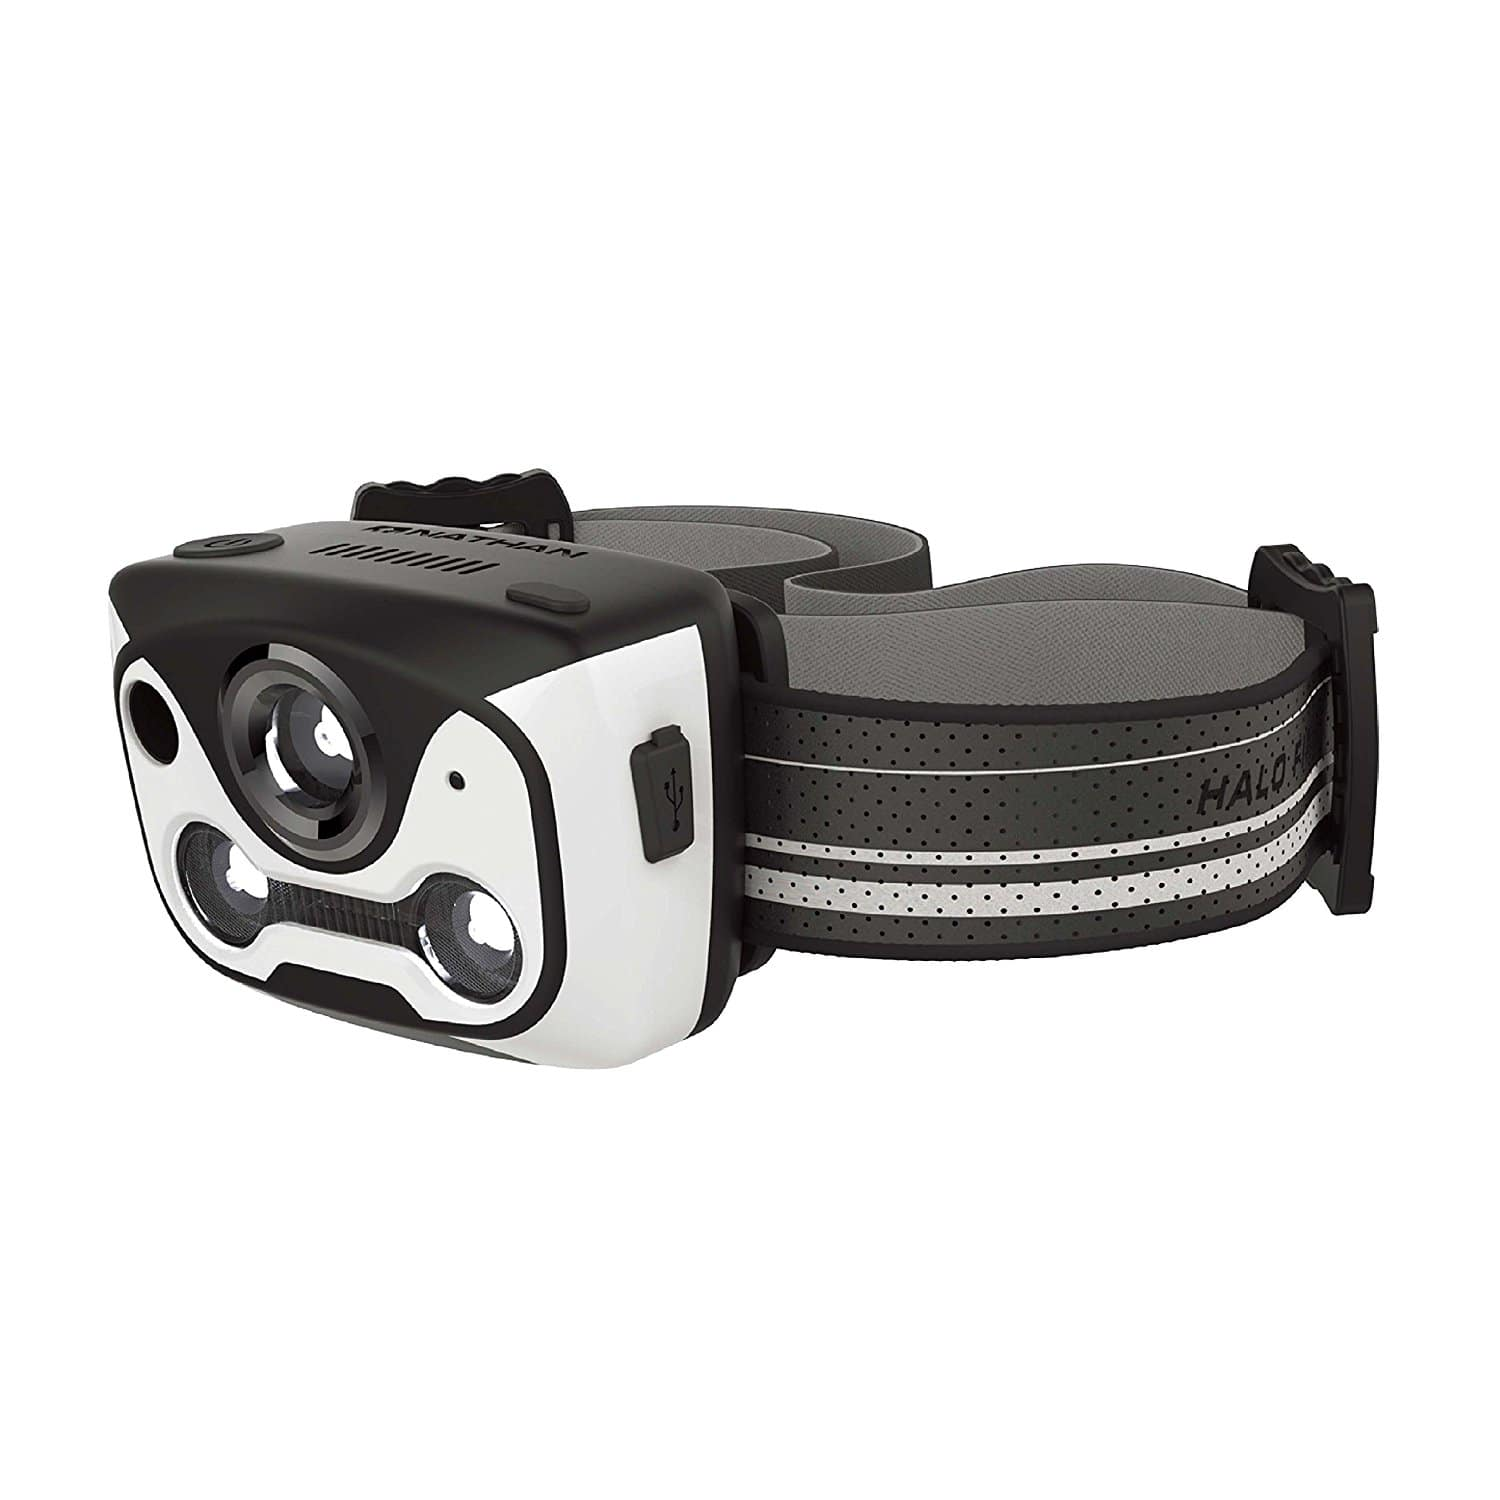 Nathansports Halo Fire Headlamp - $47